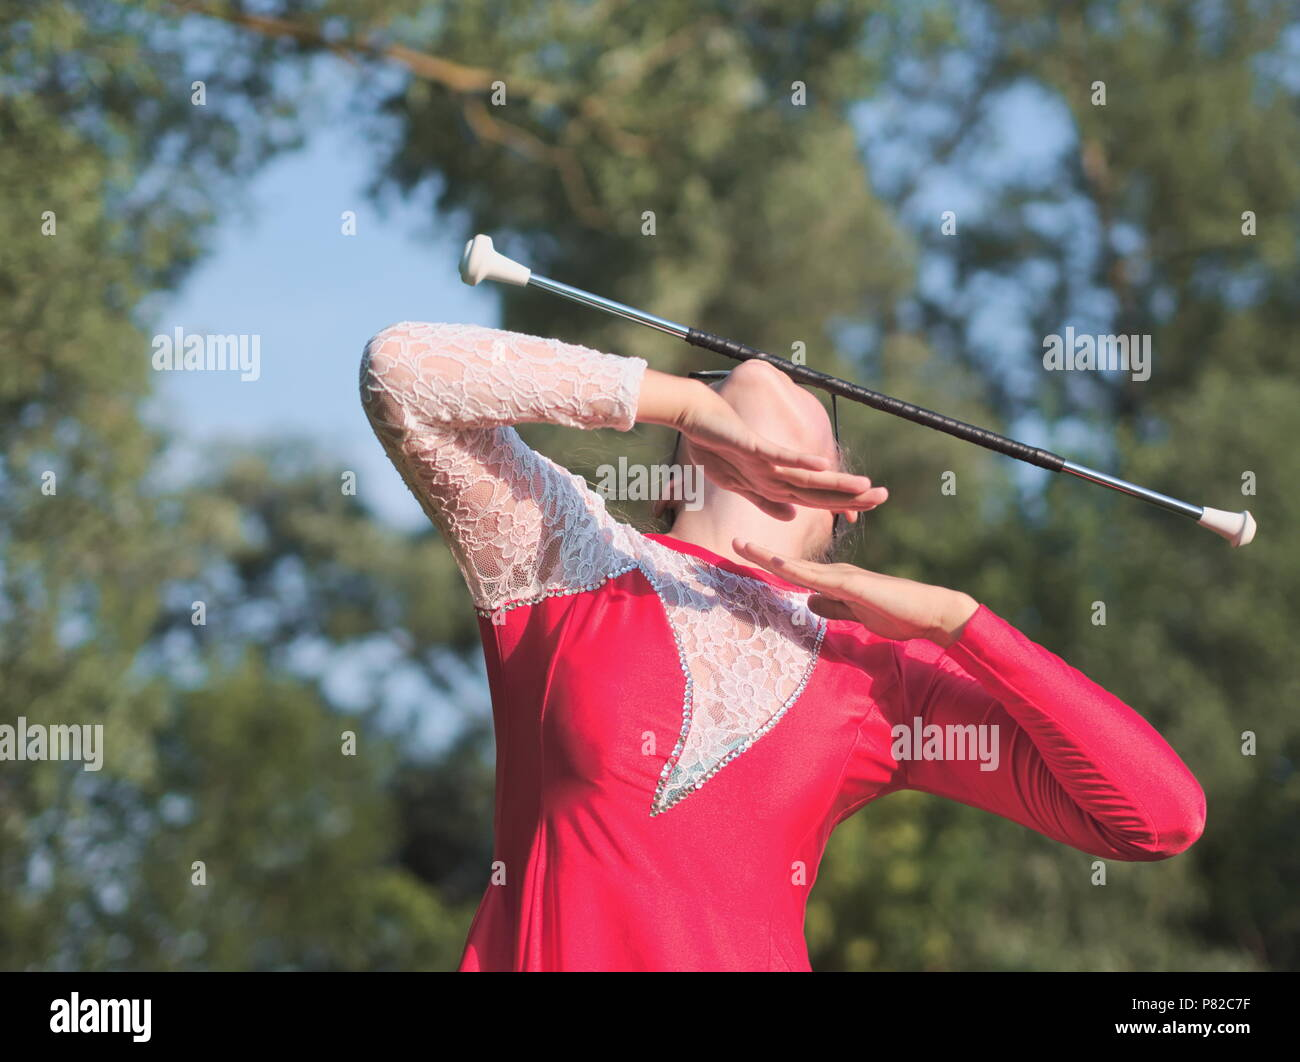 Bespectacled Blonde Teen Majorette Girl Twirling Baton Outdoors in Red Dress - Stock Image